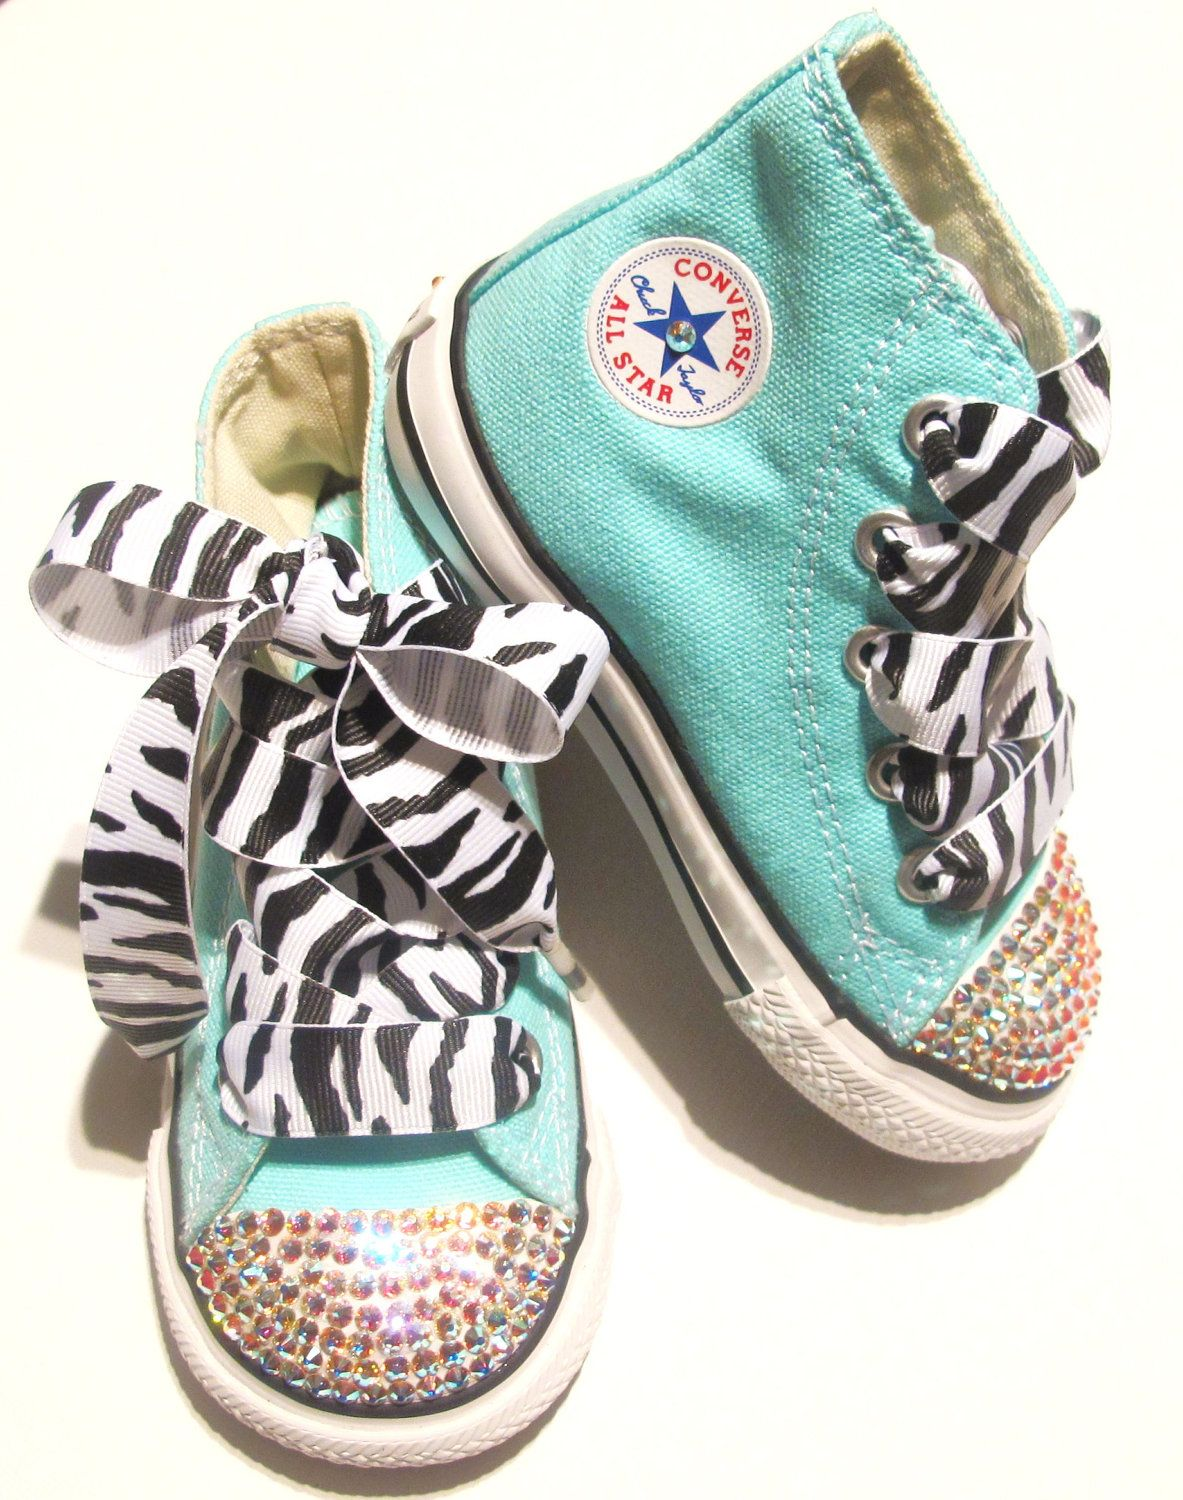 Then there's Tiffany blue Converse high top sneakers covered